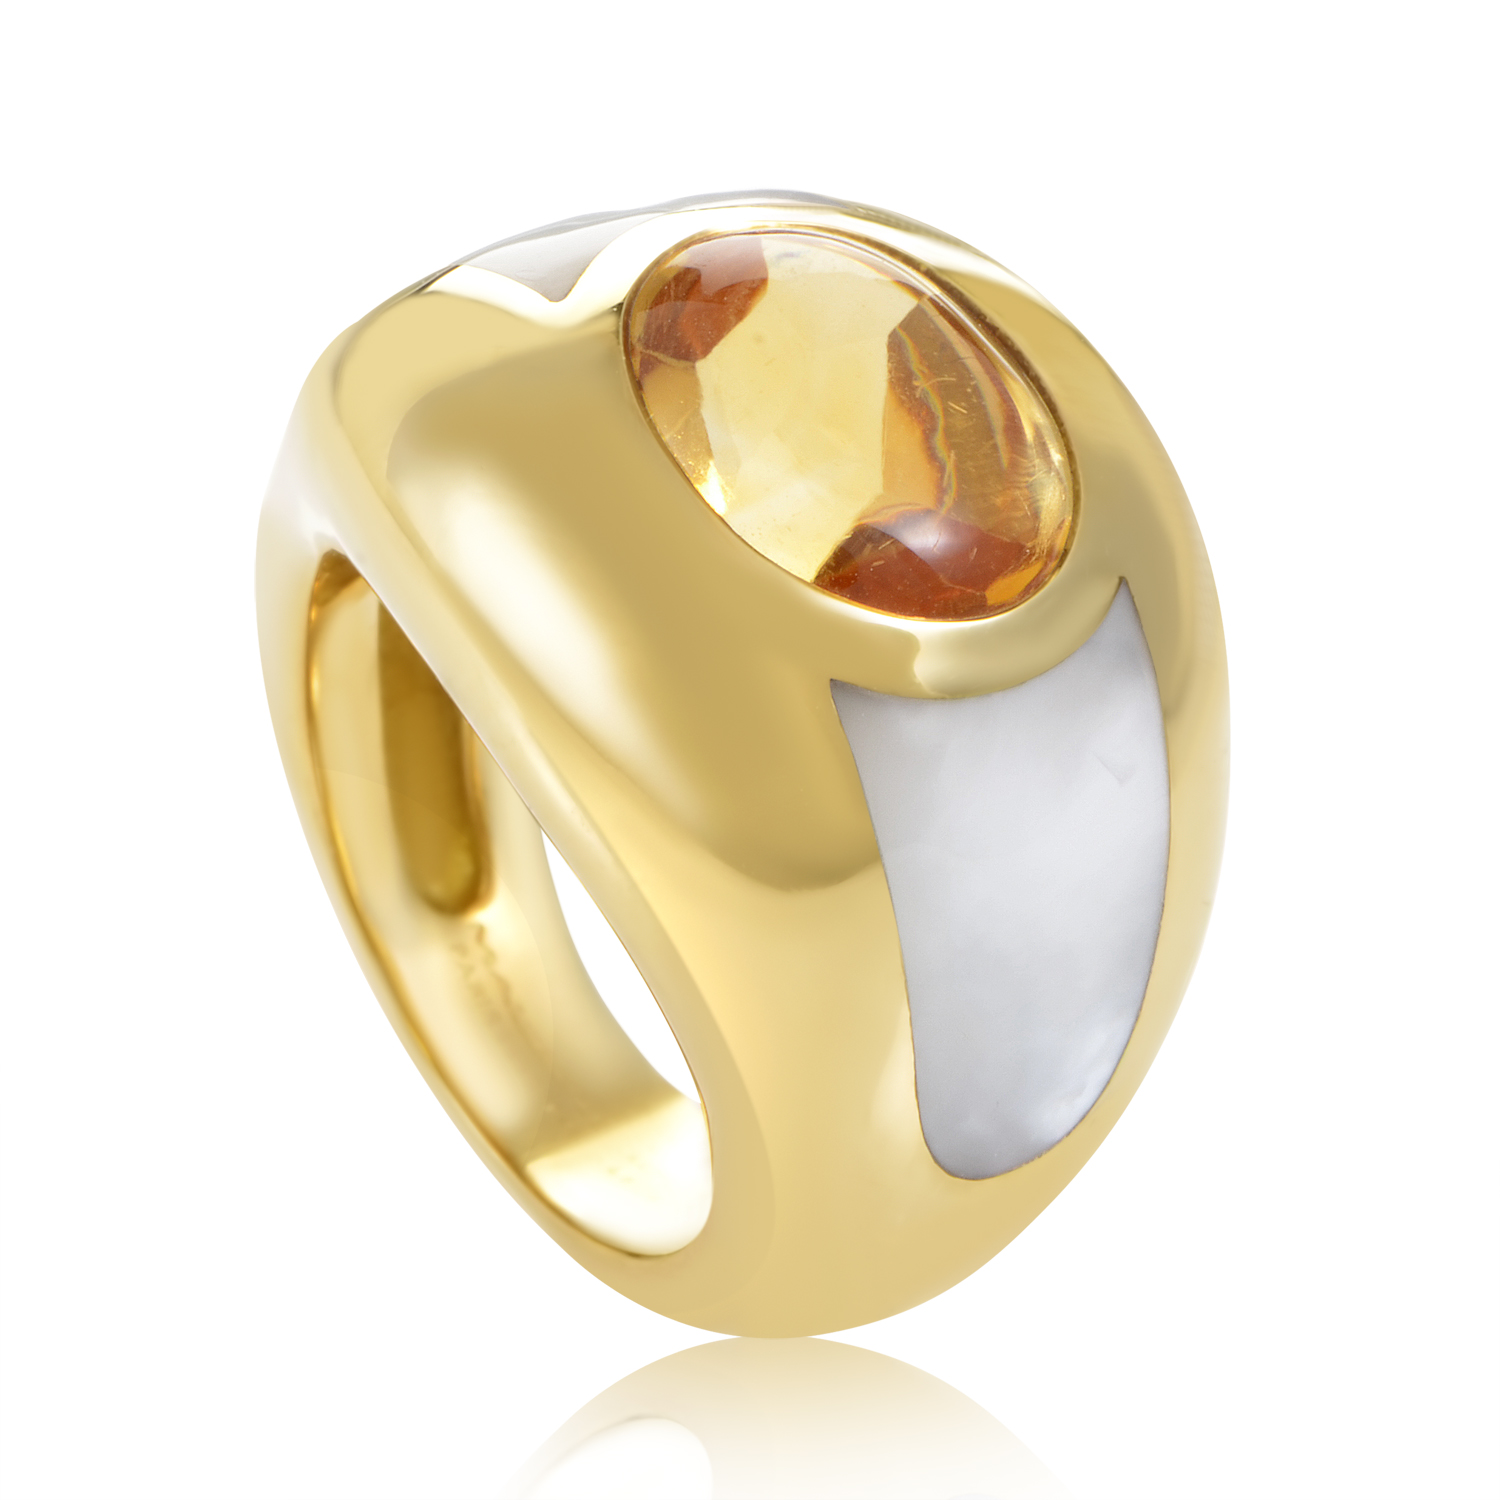 "Image of ""Mauboussin 18K Yellow Gold Citrine & Mother of Pearl Bombe Ring Sz 4.5"""